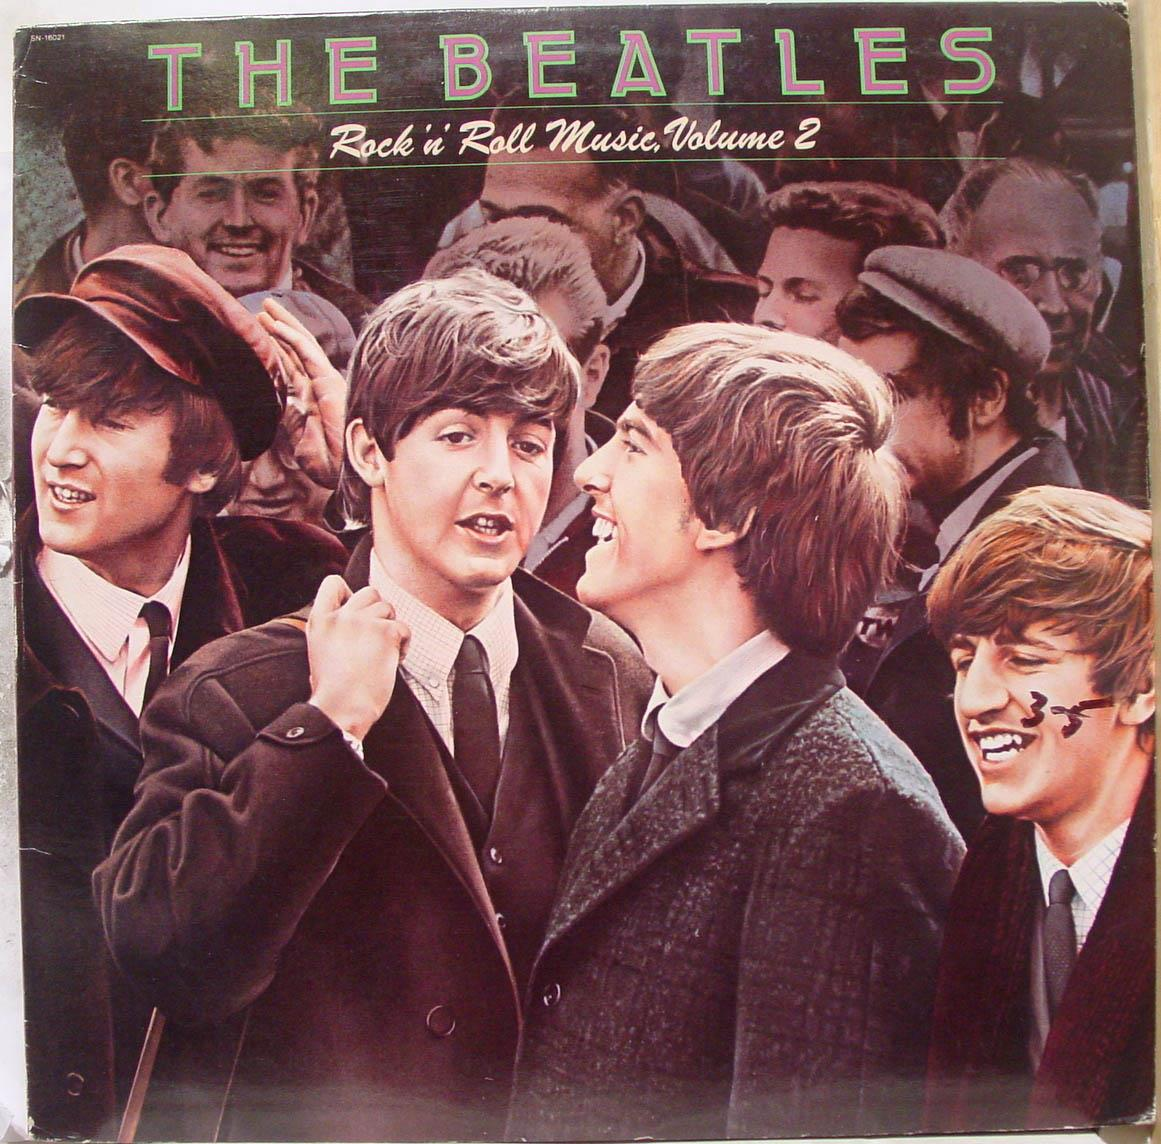 BEATLES - The Beatles Rock N Roll Music Vol 2 Lp Vg+ Sn 16021 Vinyl 1980 Record (rock N Roll Music Vol 2)